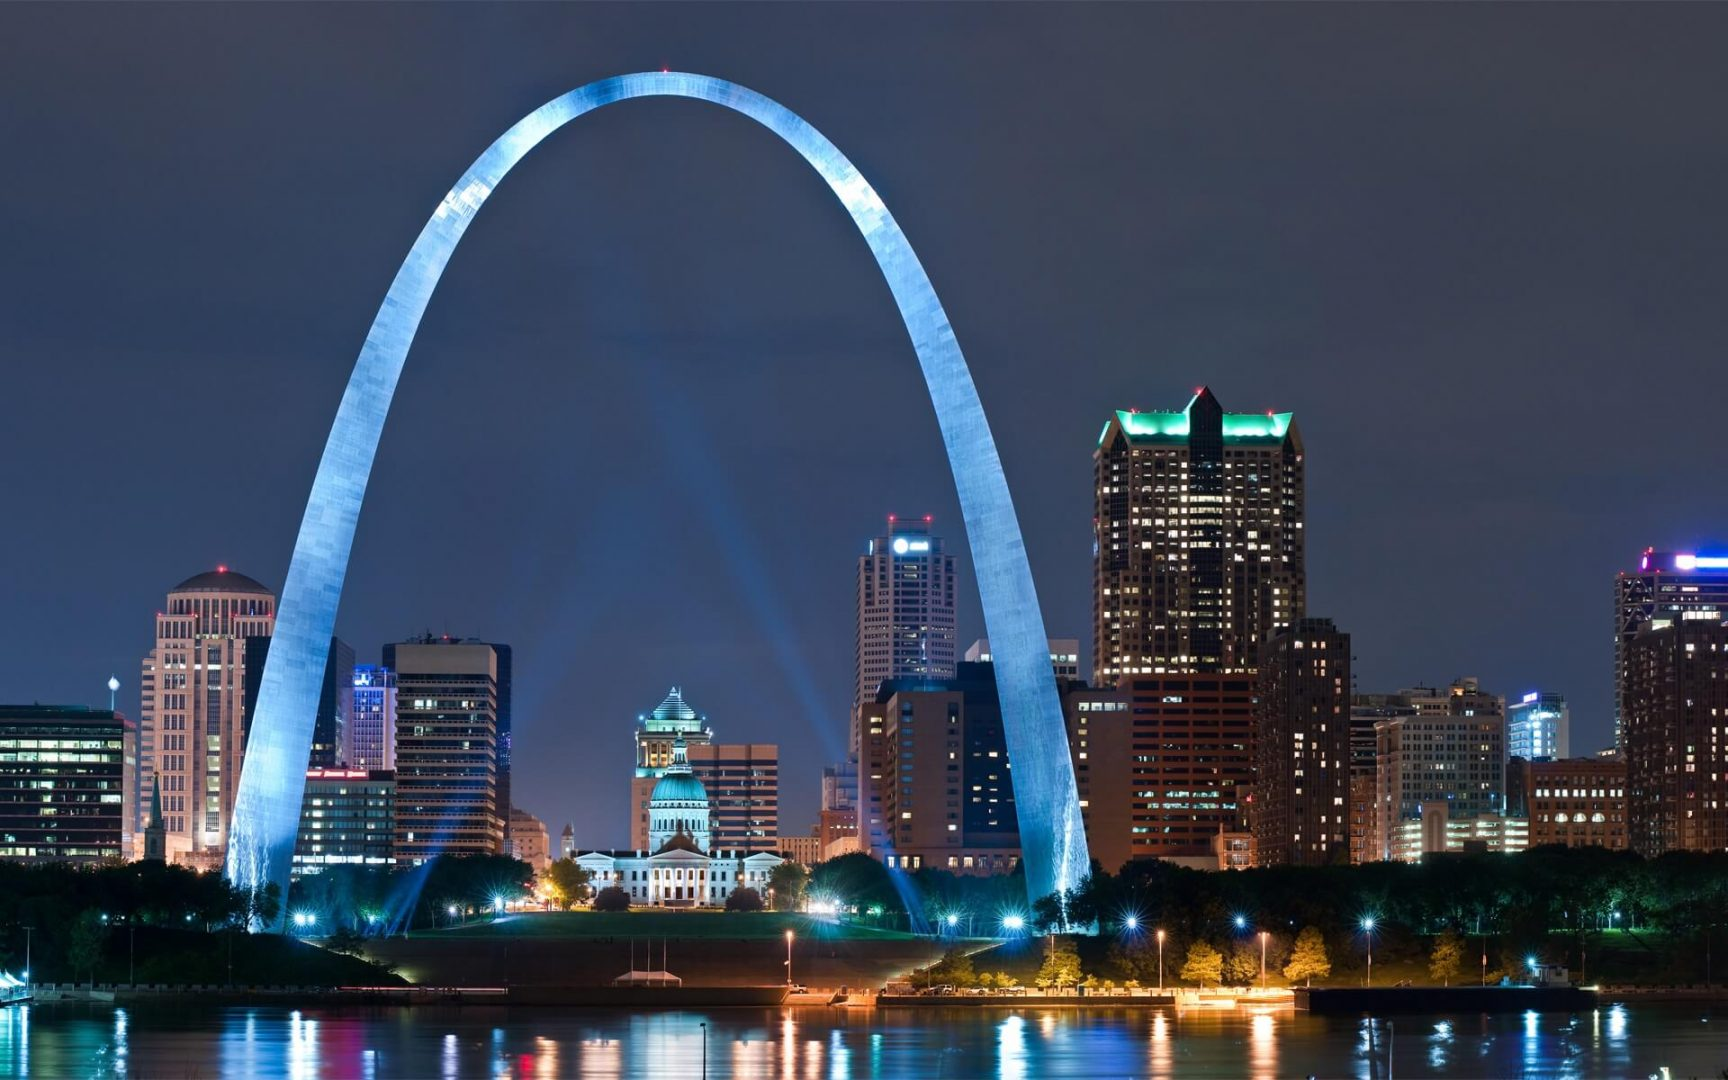 St Louis City Header Image